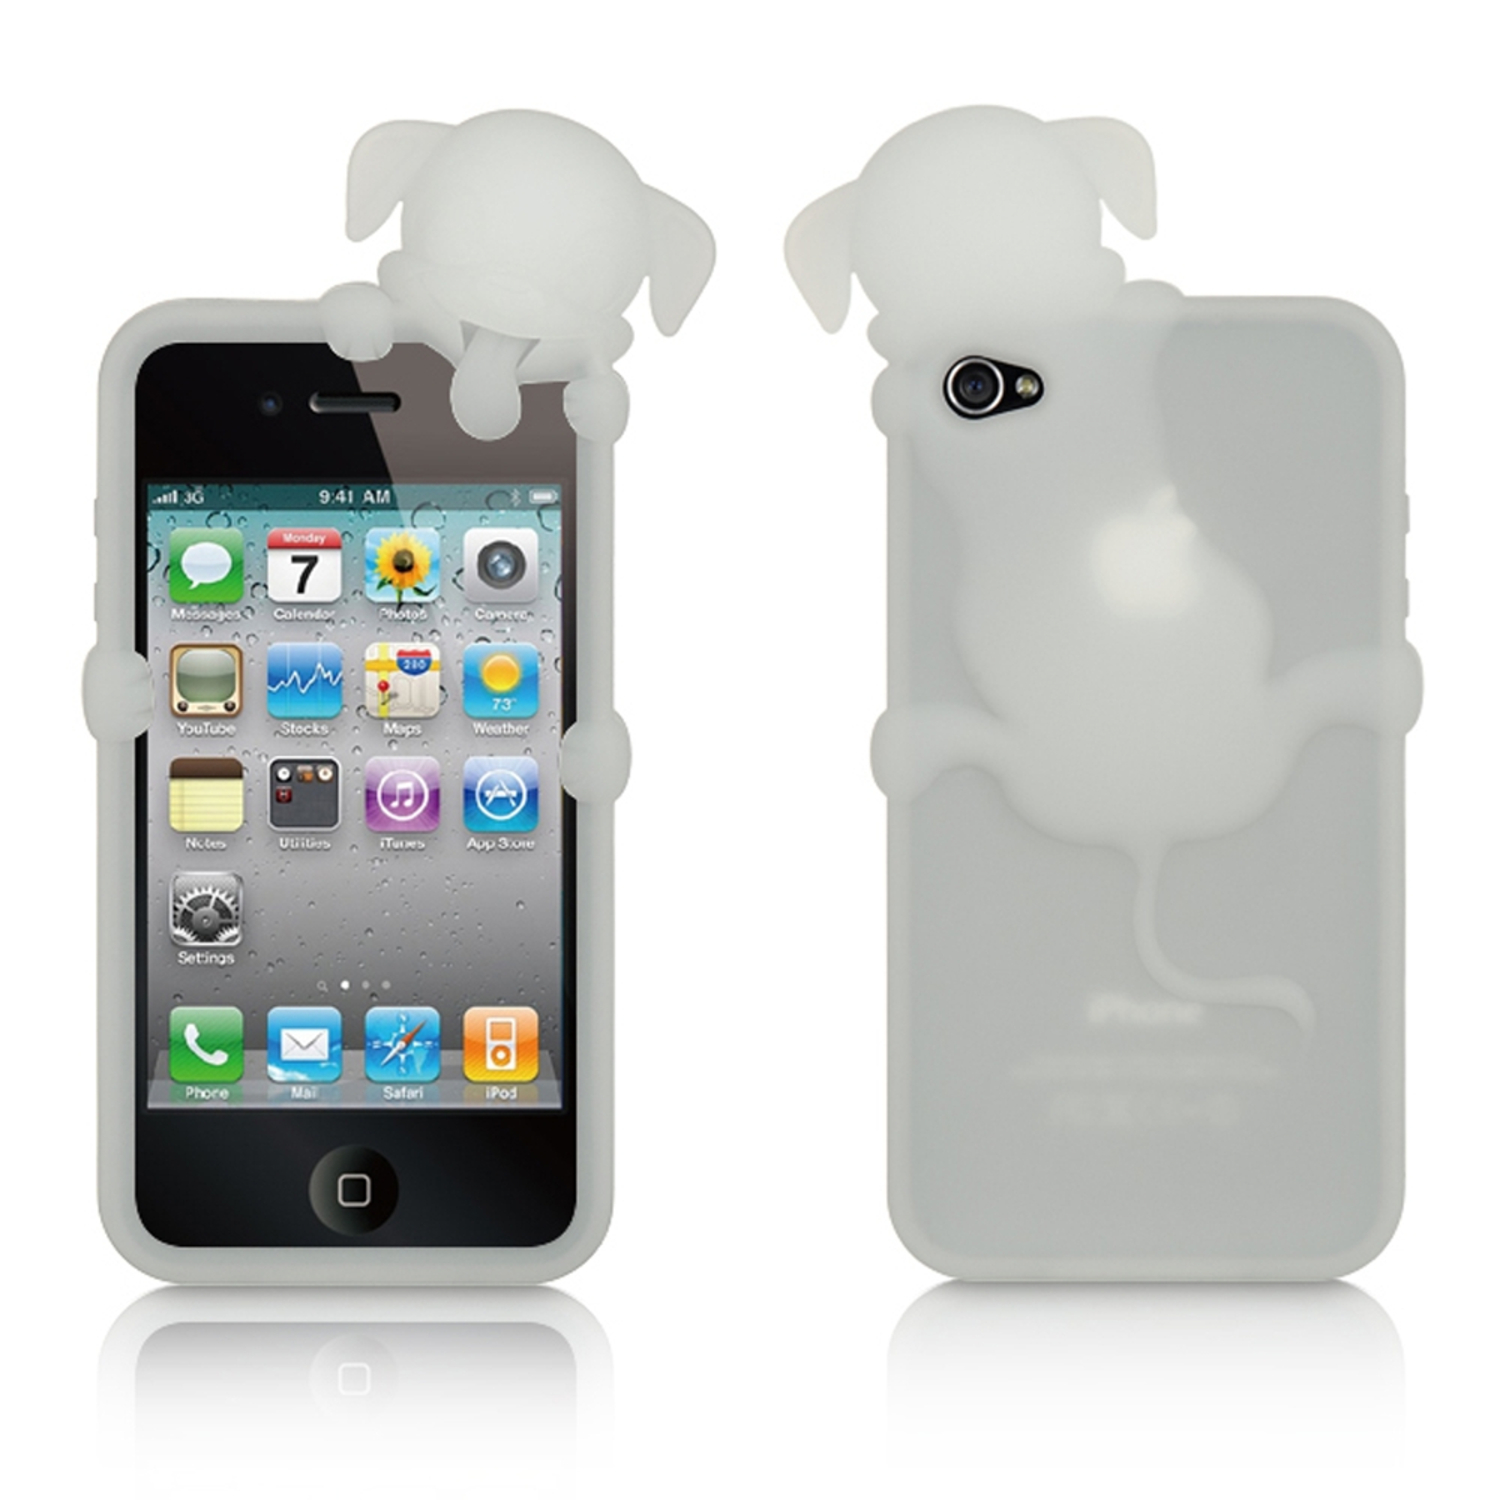 iPhone 4s case by Insten Rubber Silicone Soft Skin Gel Case Cover For Apple iPhone 4/4S